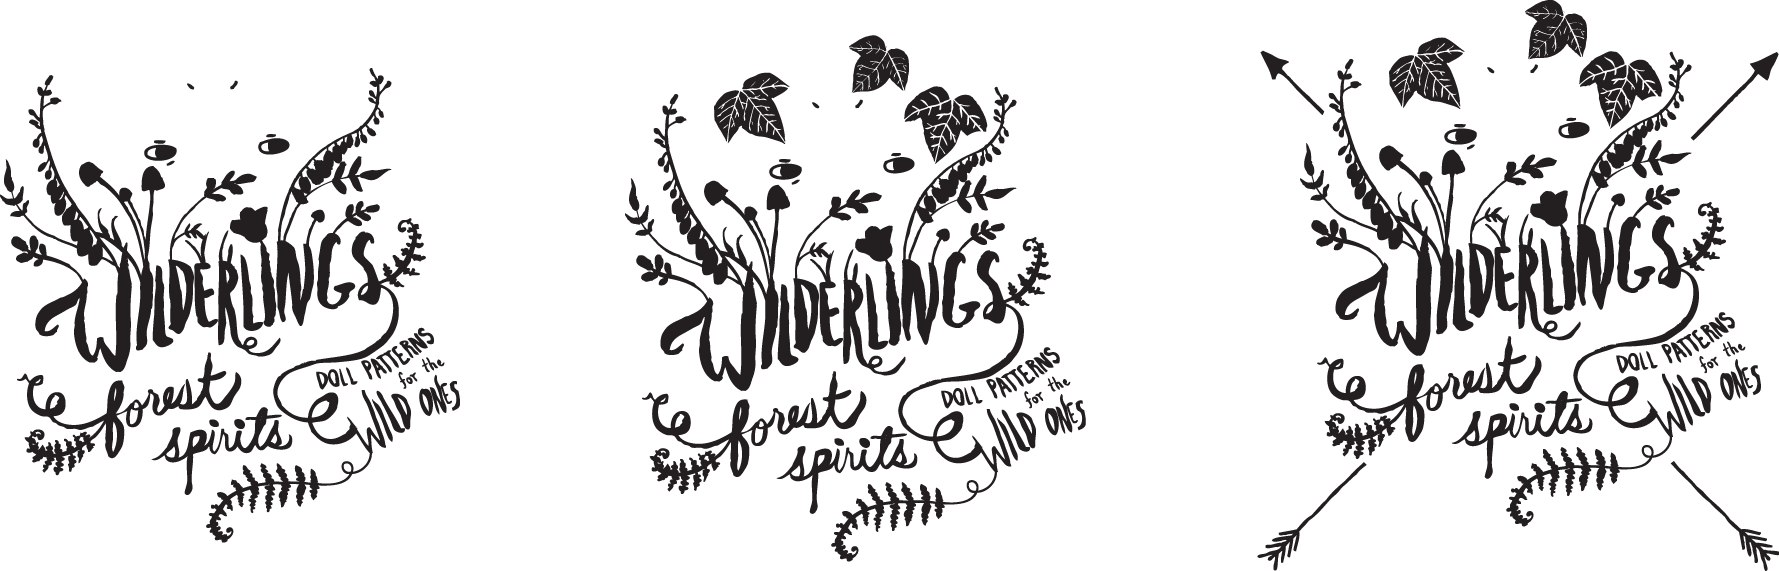 Wilderlings: dolls for the wild ones - image 2 - student project